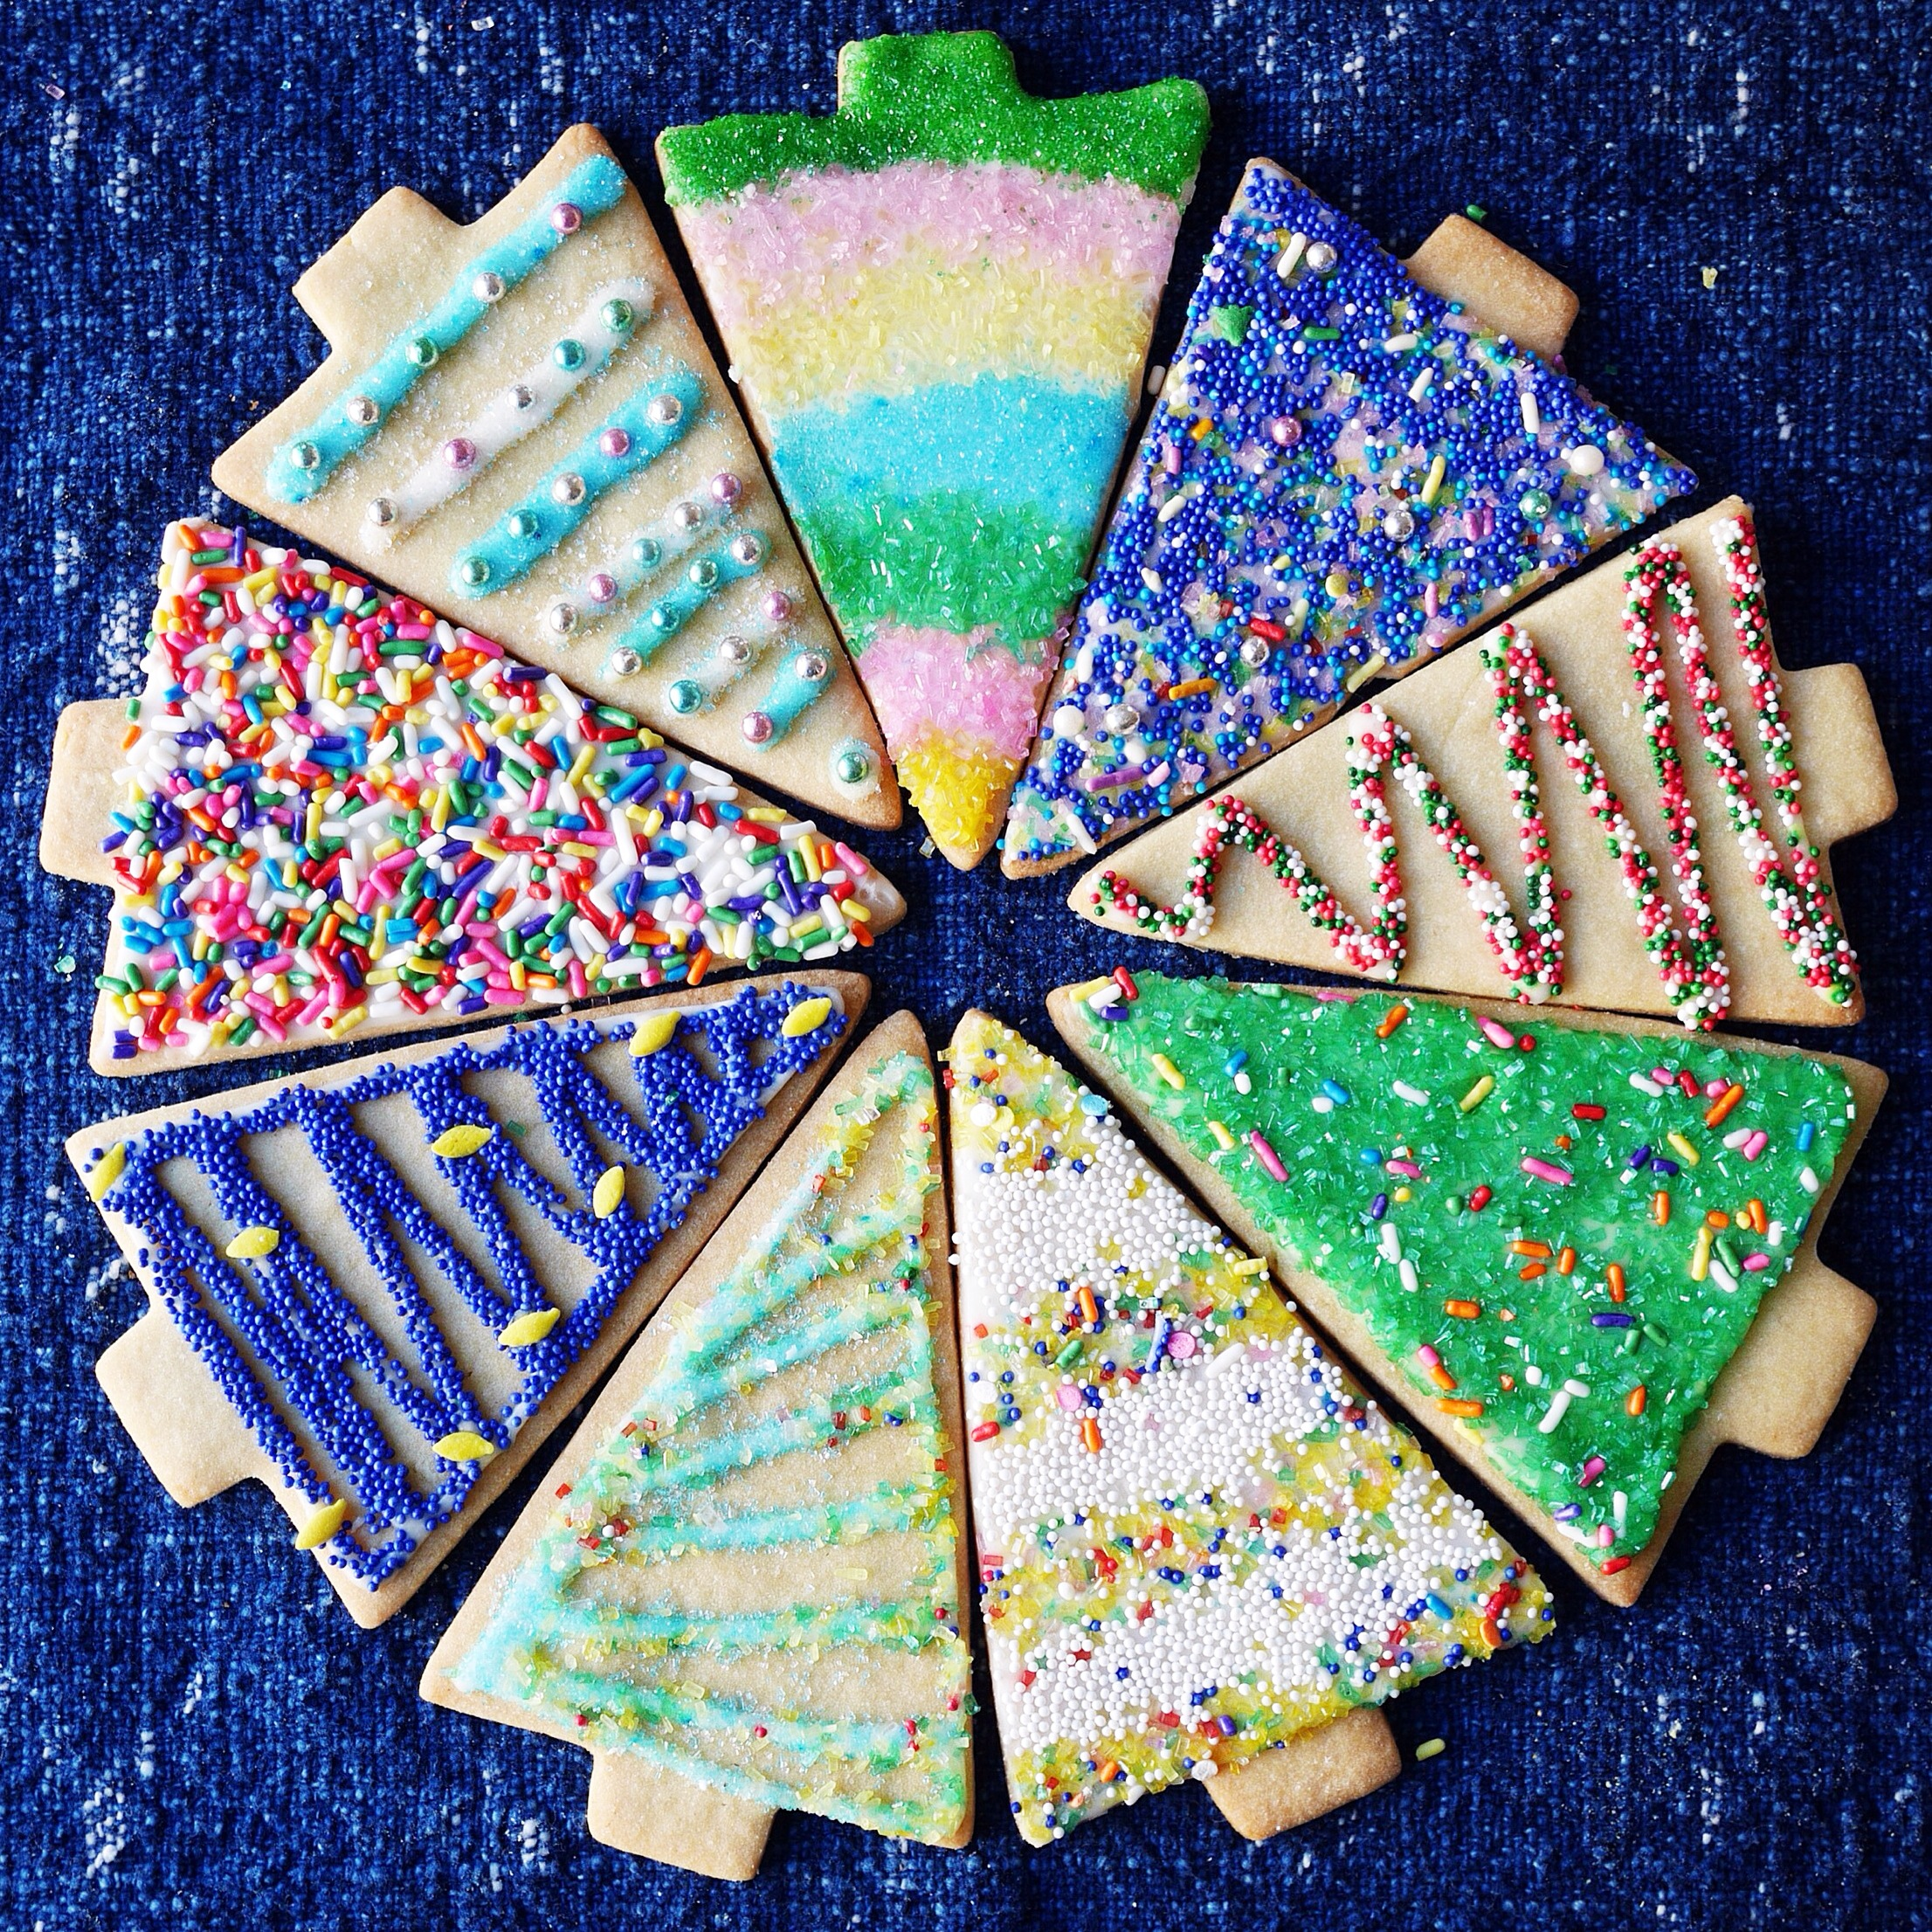 easy holiday sugar cookie decorating ideas from mostessco - Decorations For Christmas Sugar Cookies